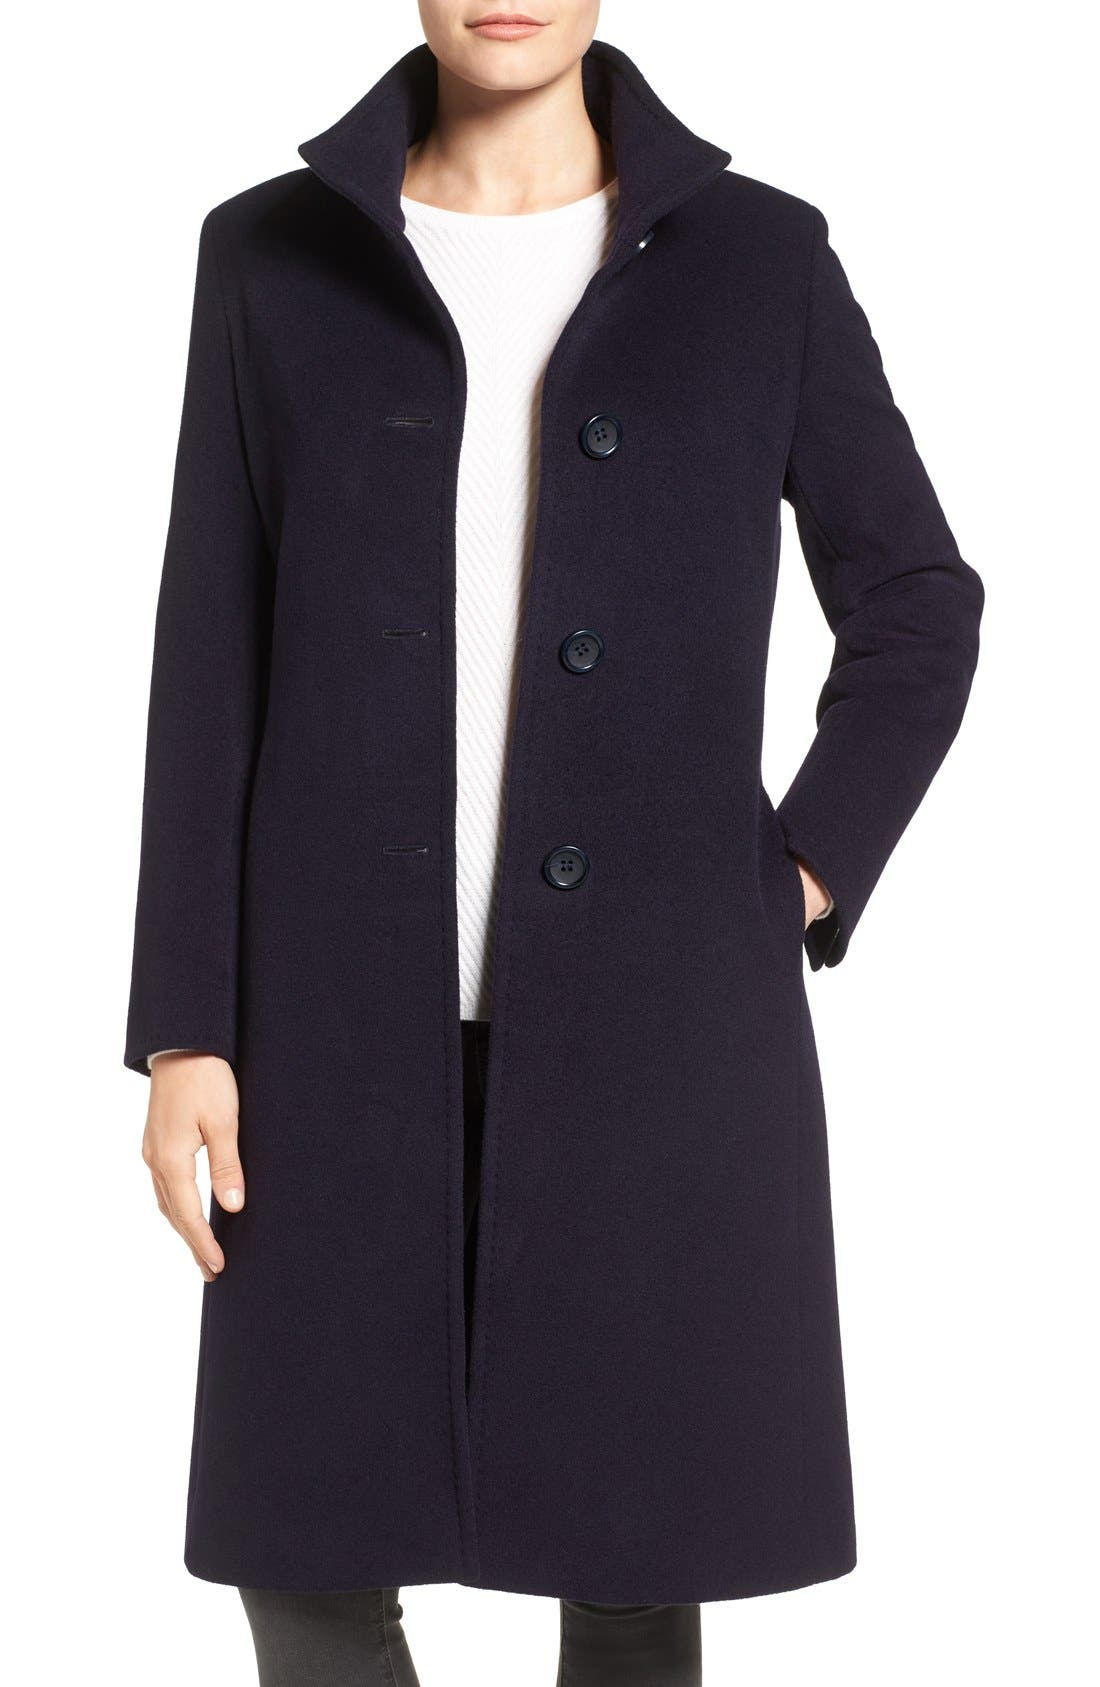 Main Image - Cinzia Rocca Icons Stand Collar Wool Blend Walking Coat